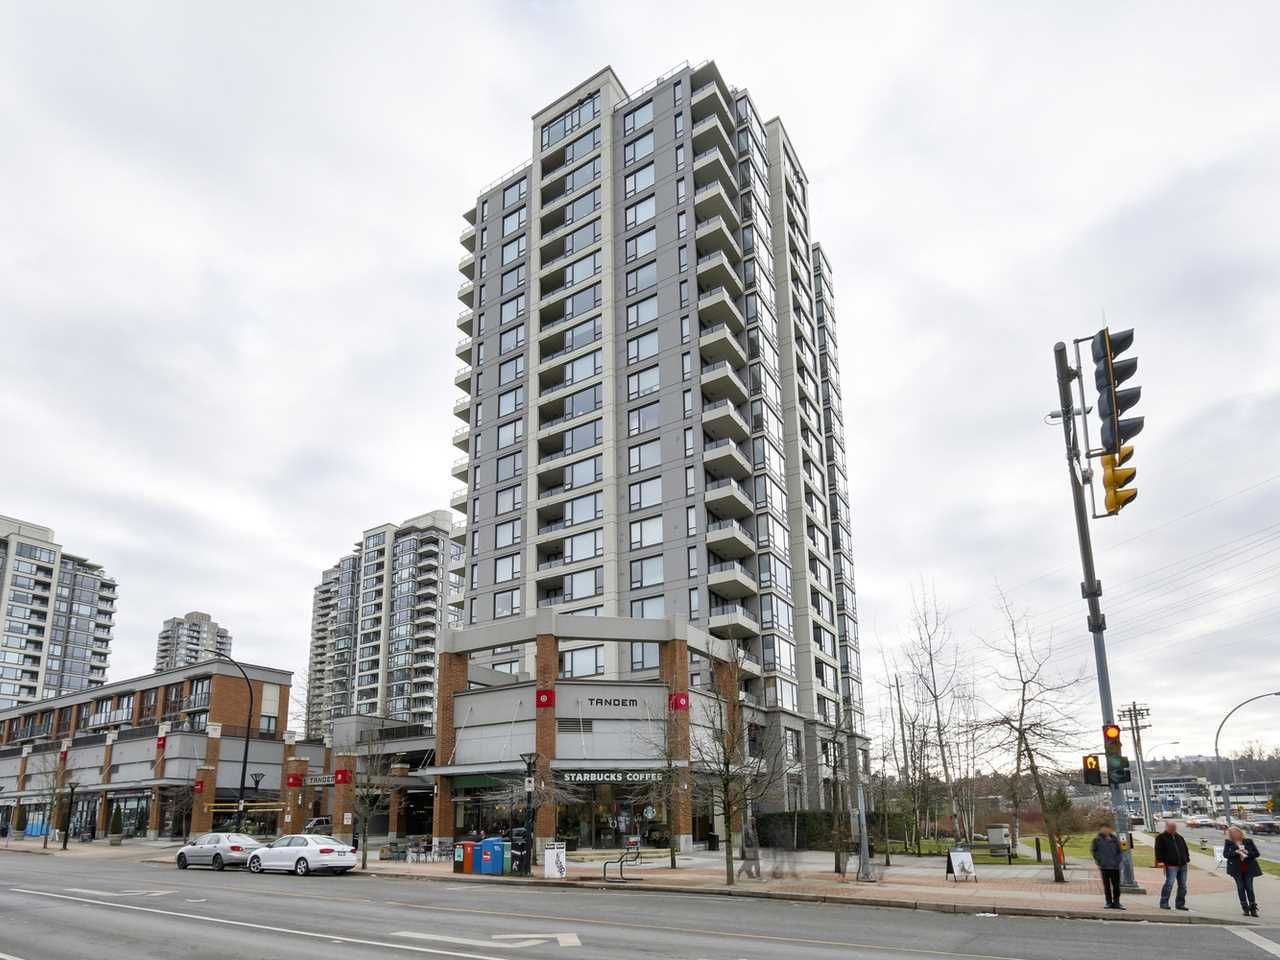 """Main Photo: 707 4118 DAWSON Street in Burnaby: Brentwood Park Condo for sale in """"TANDEM"""" (Burnaby North)  : MLS®# R2135489"""